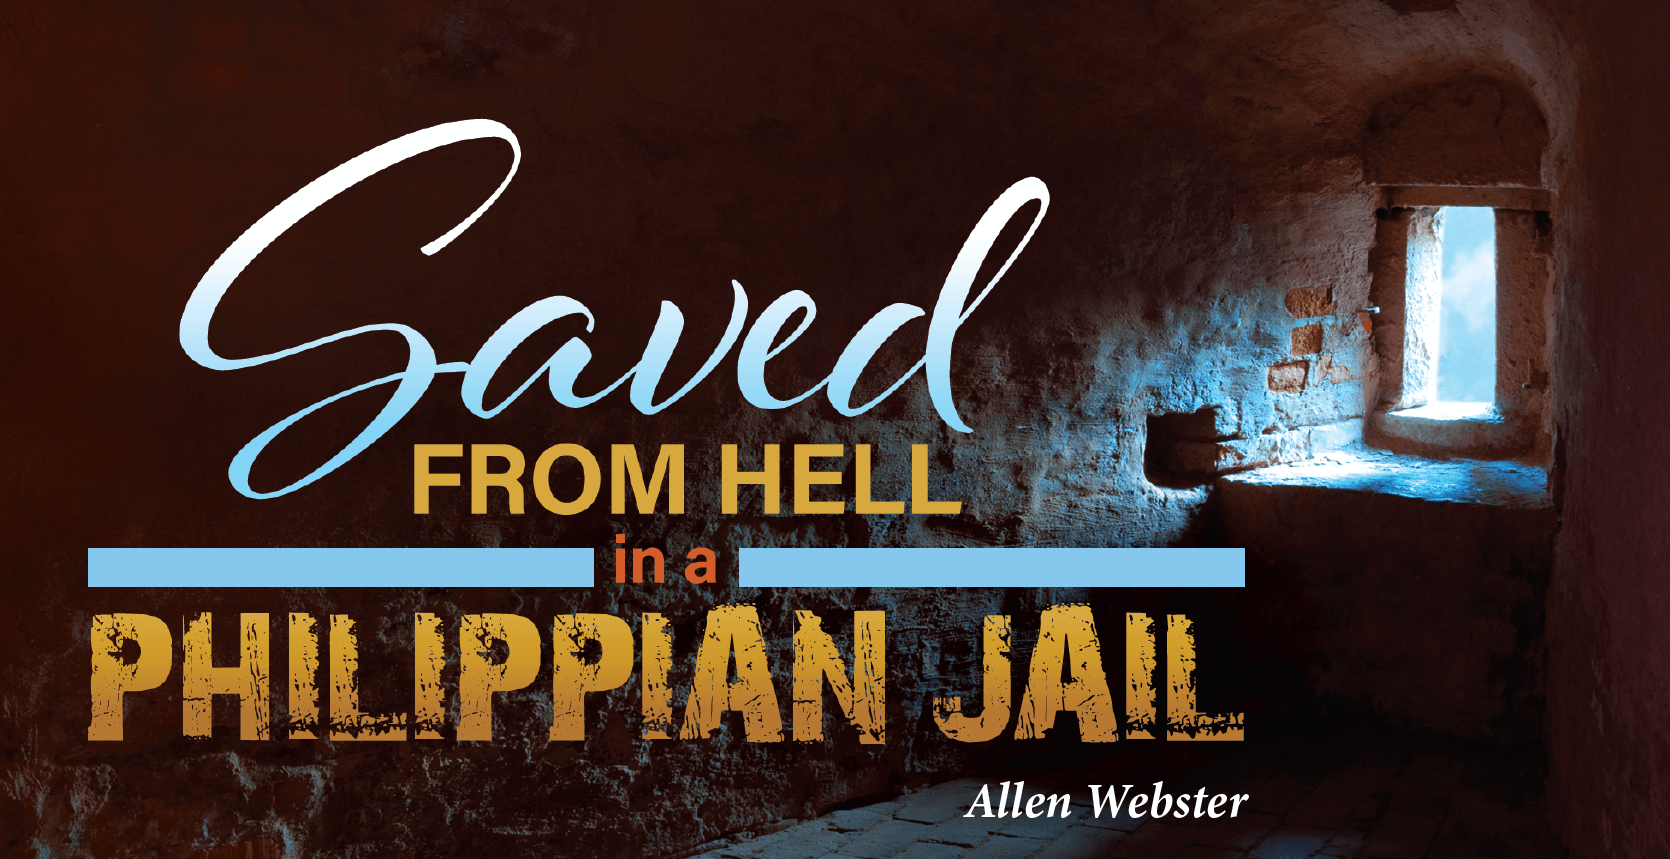 Saved from Hell in a Philippian Jail